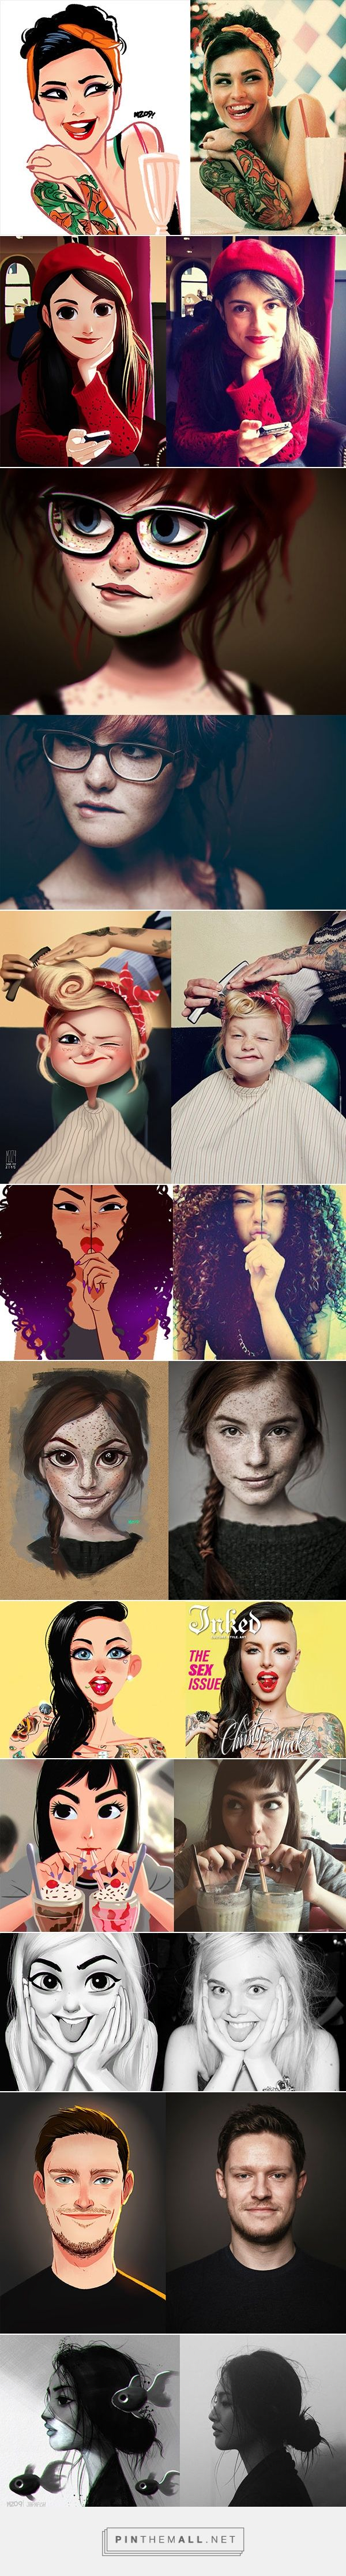 Stunning Digital Art Paintings of Random People – A Fun Series by Julio Cesar